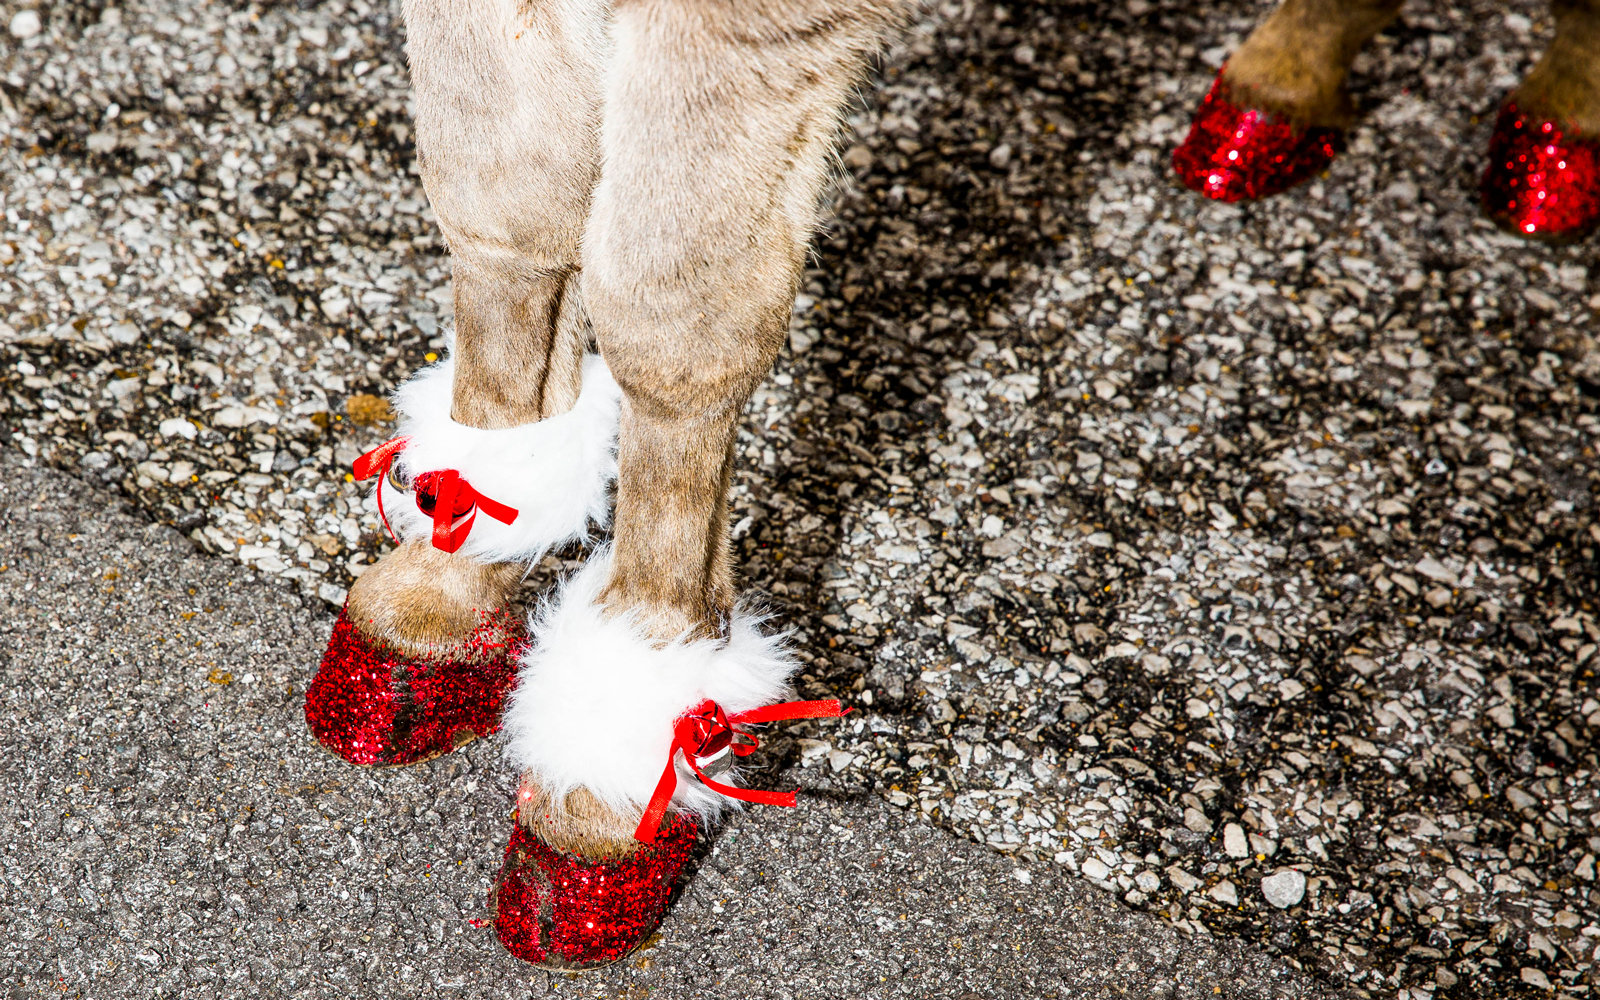 Donkey feet covered in glitter